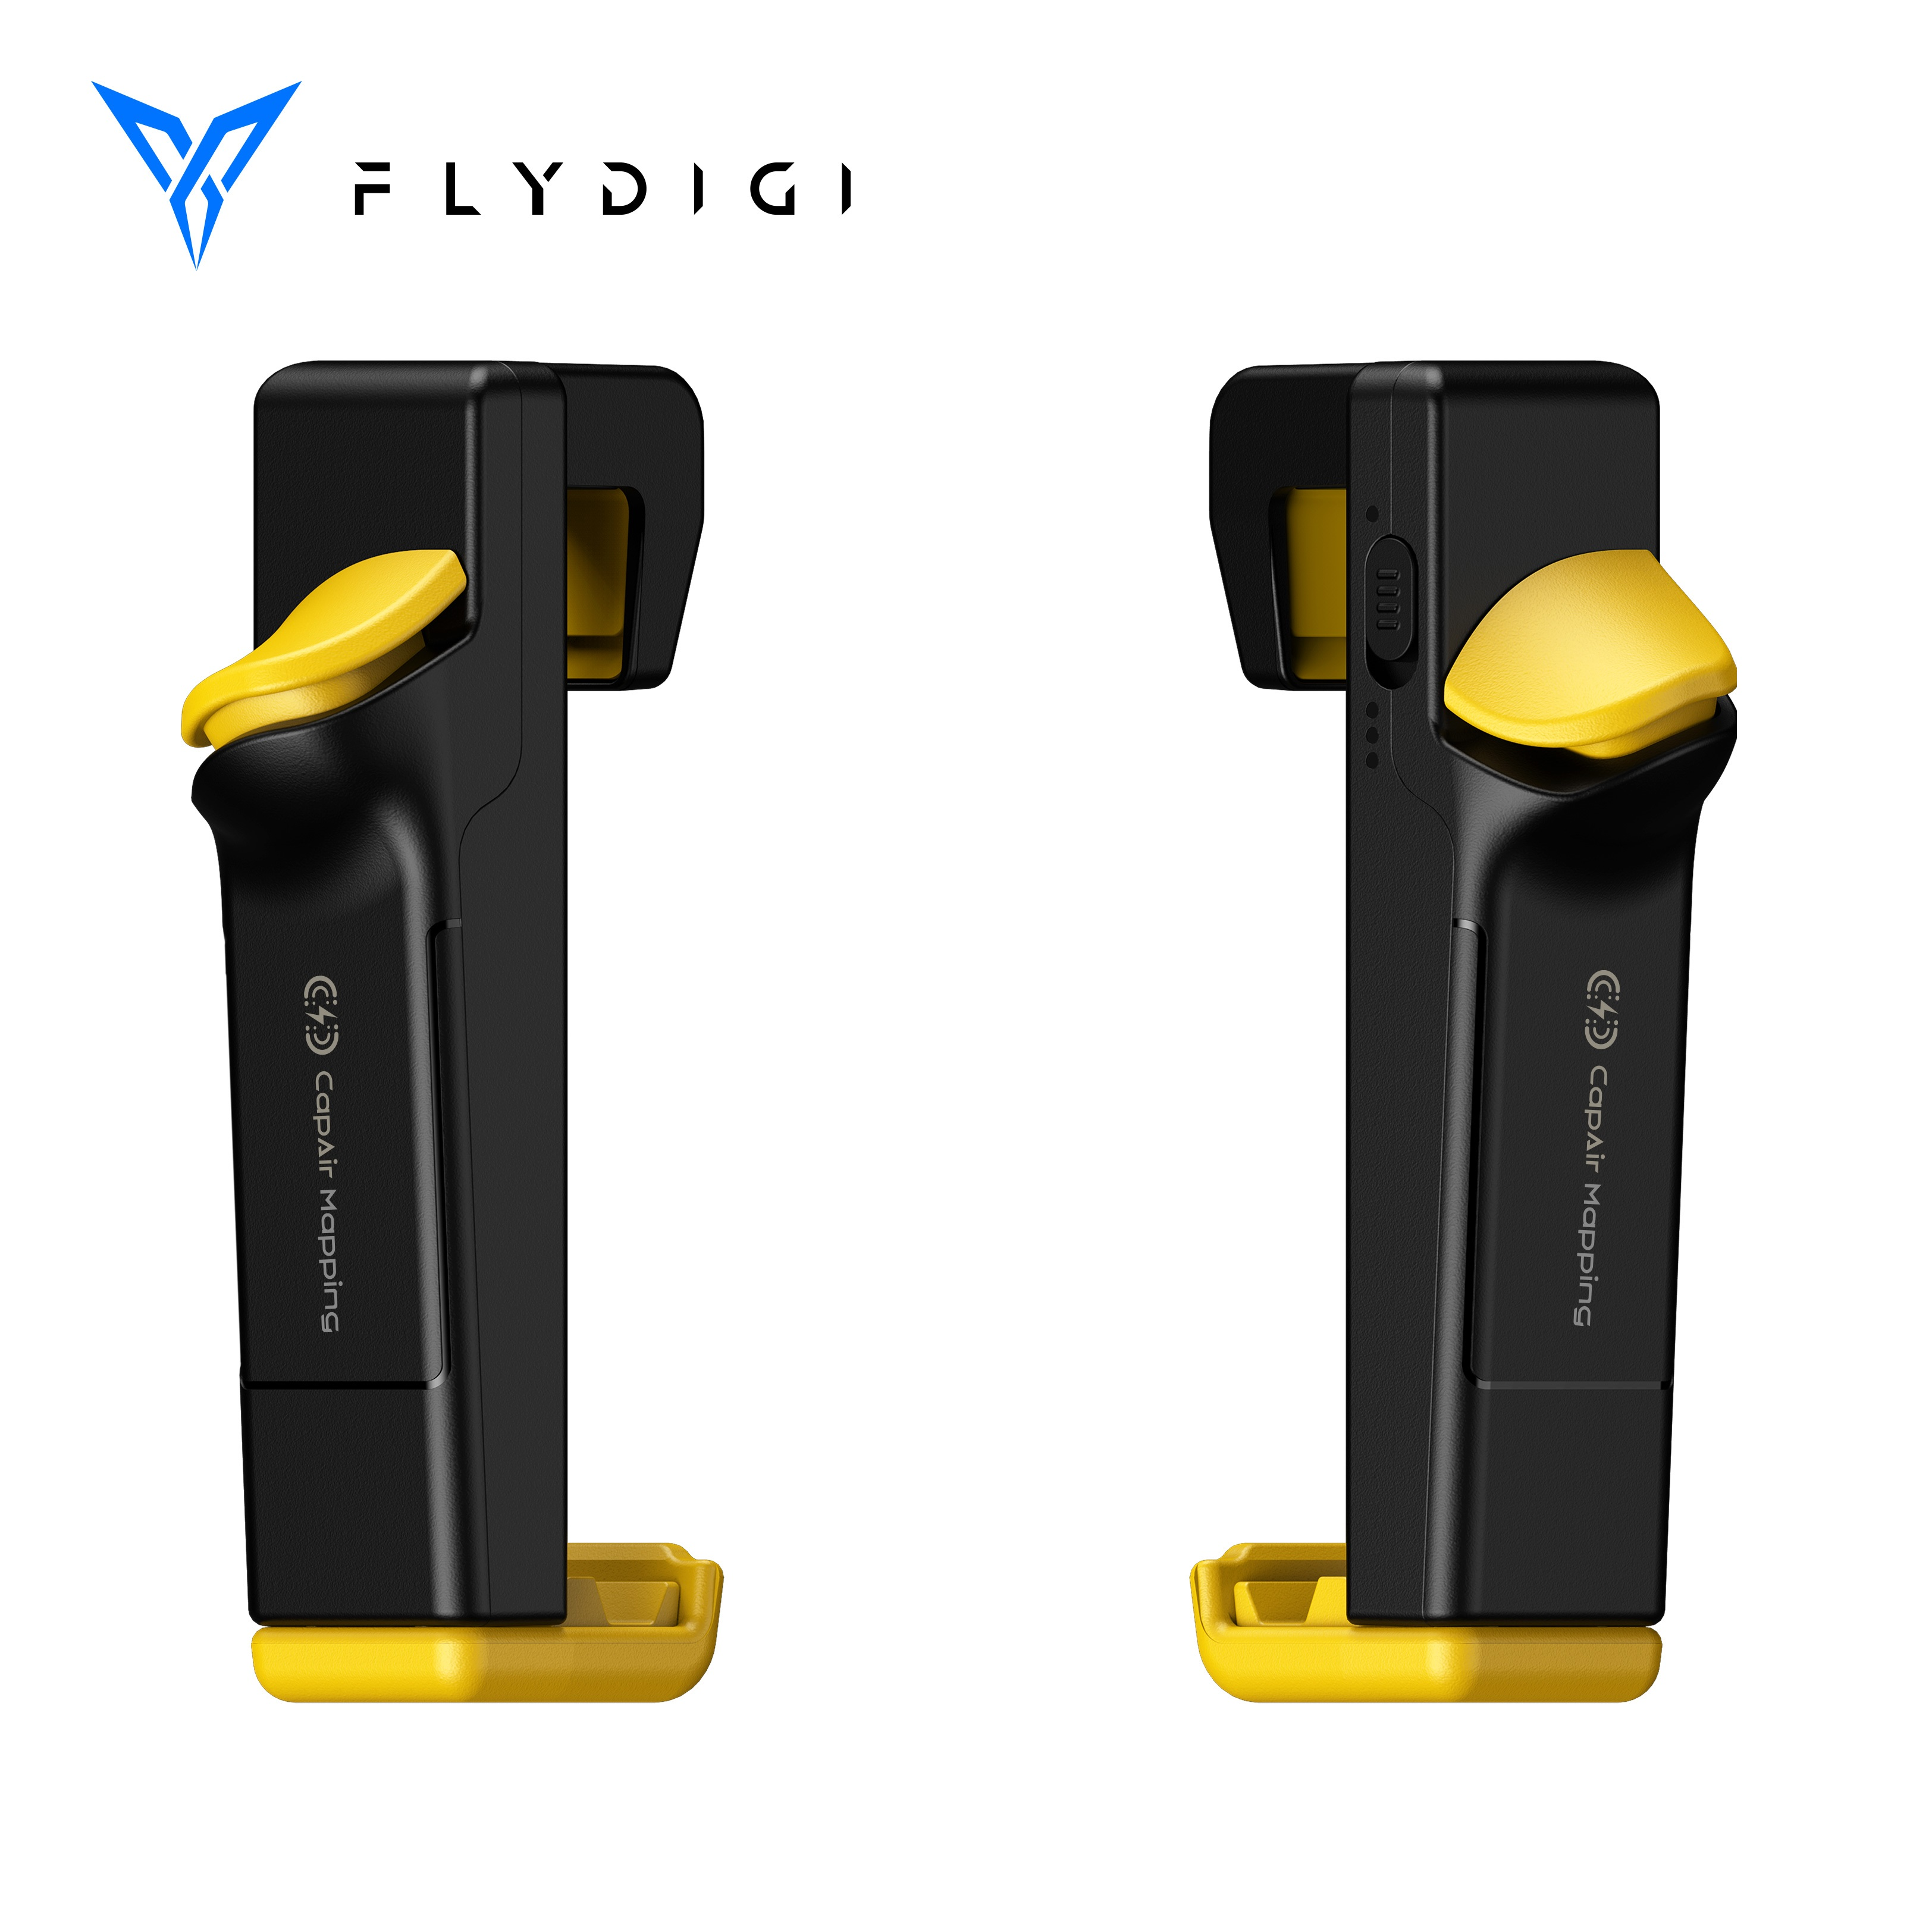 Flydigi Stinger pubg cod Mobile Trigger No Bluetooth Wireless Joystick Mobile Gamepad Shooting Controller for Android&IPHONE(China)